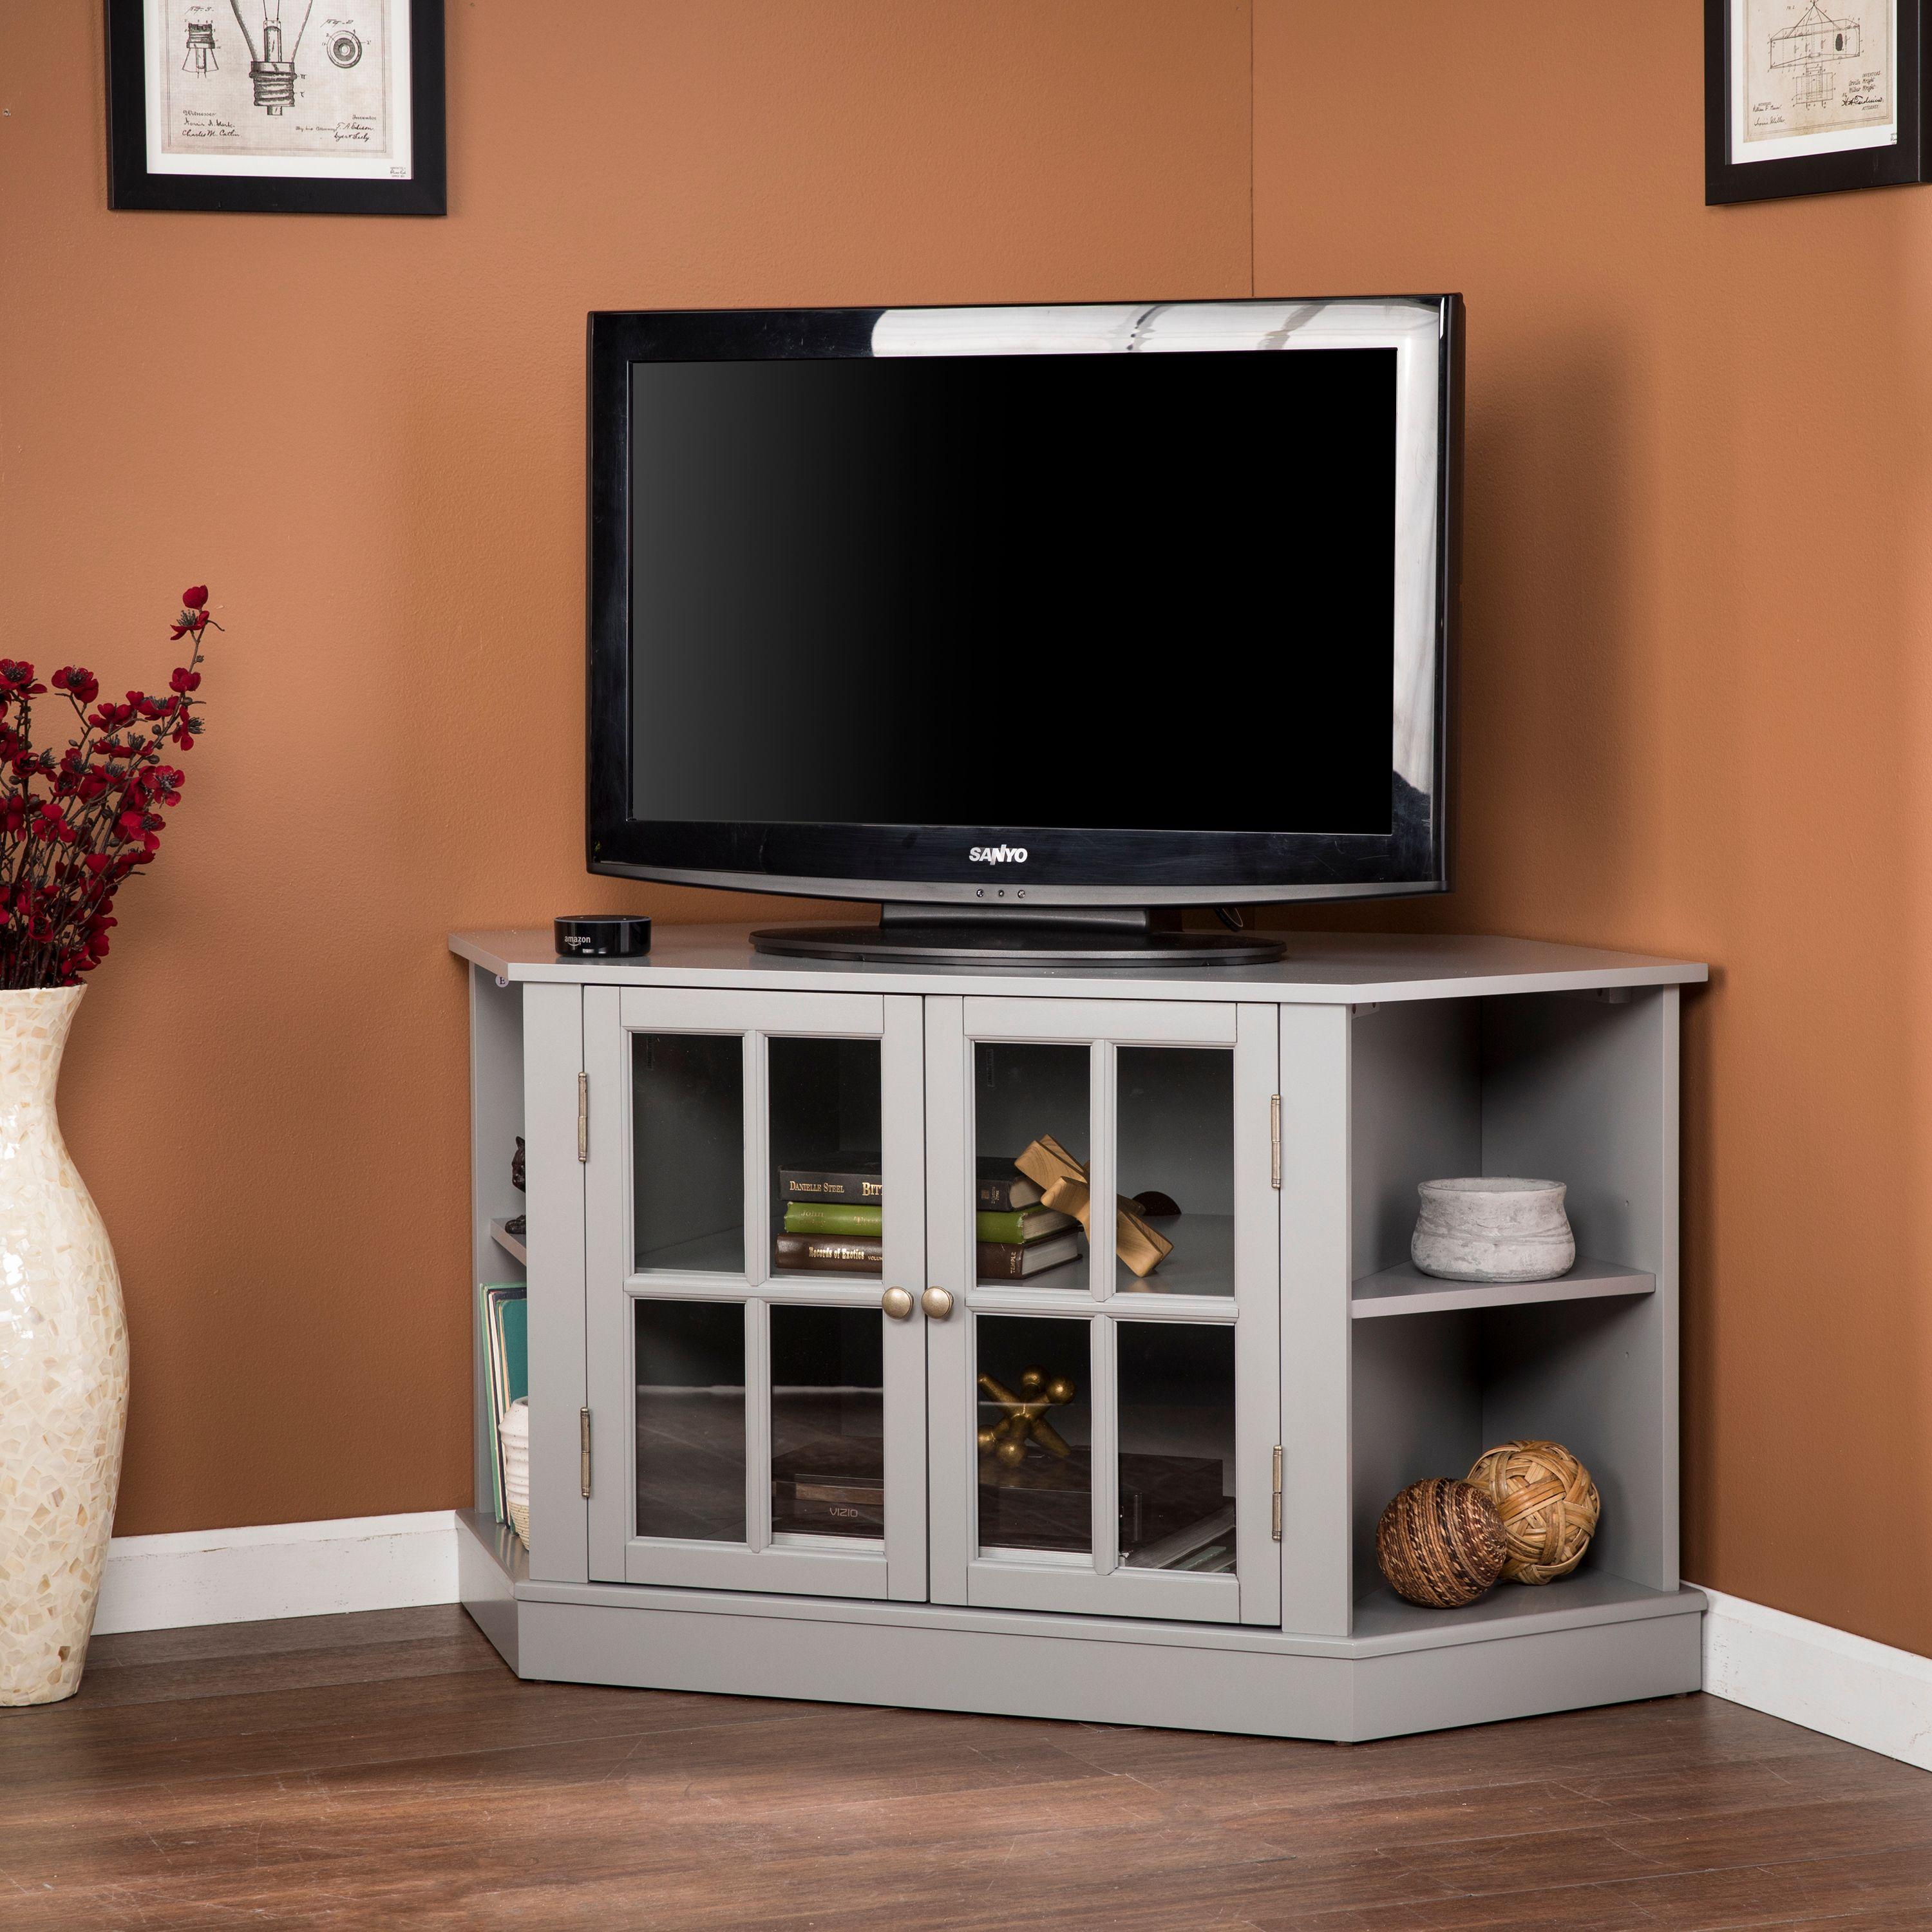 "Southern Enterprises Antlers Corner Media Stand, for TVs up to 42"", Gray"